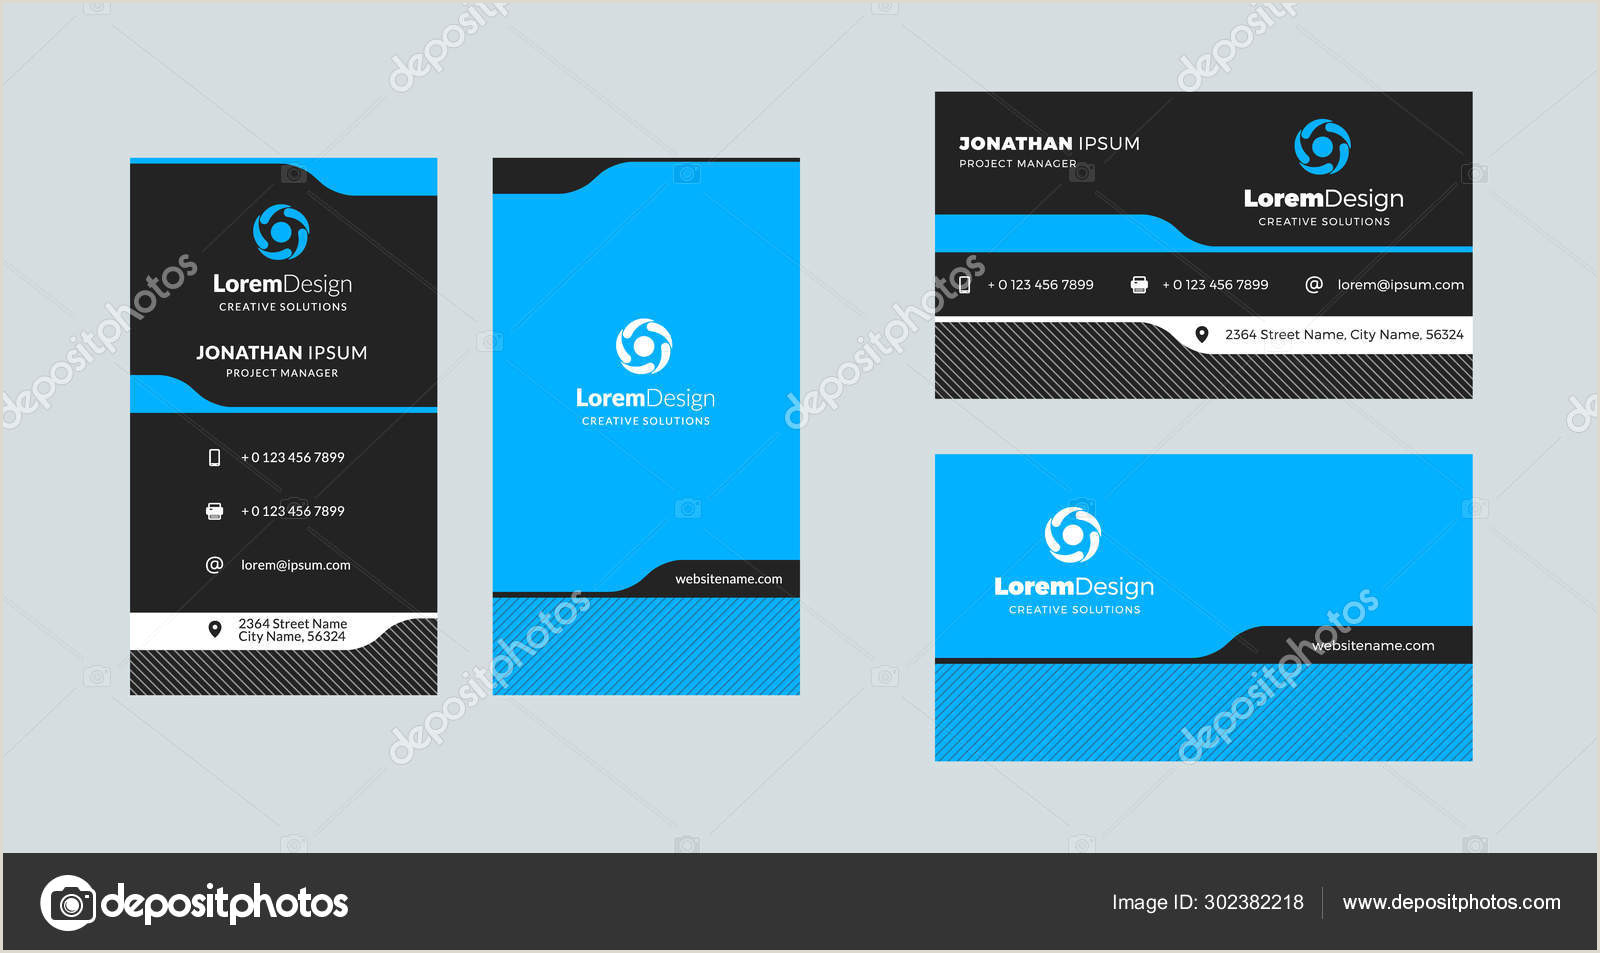 Unique Horizontal Business Cards Double Sided Creative Business Card Template Portrait And Landscape Orientation Horizontal And Vertical Layout Vector Illustration